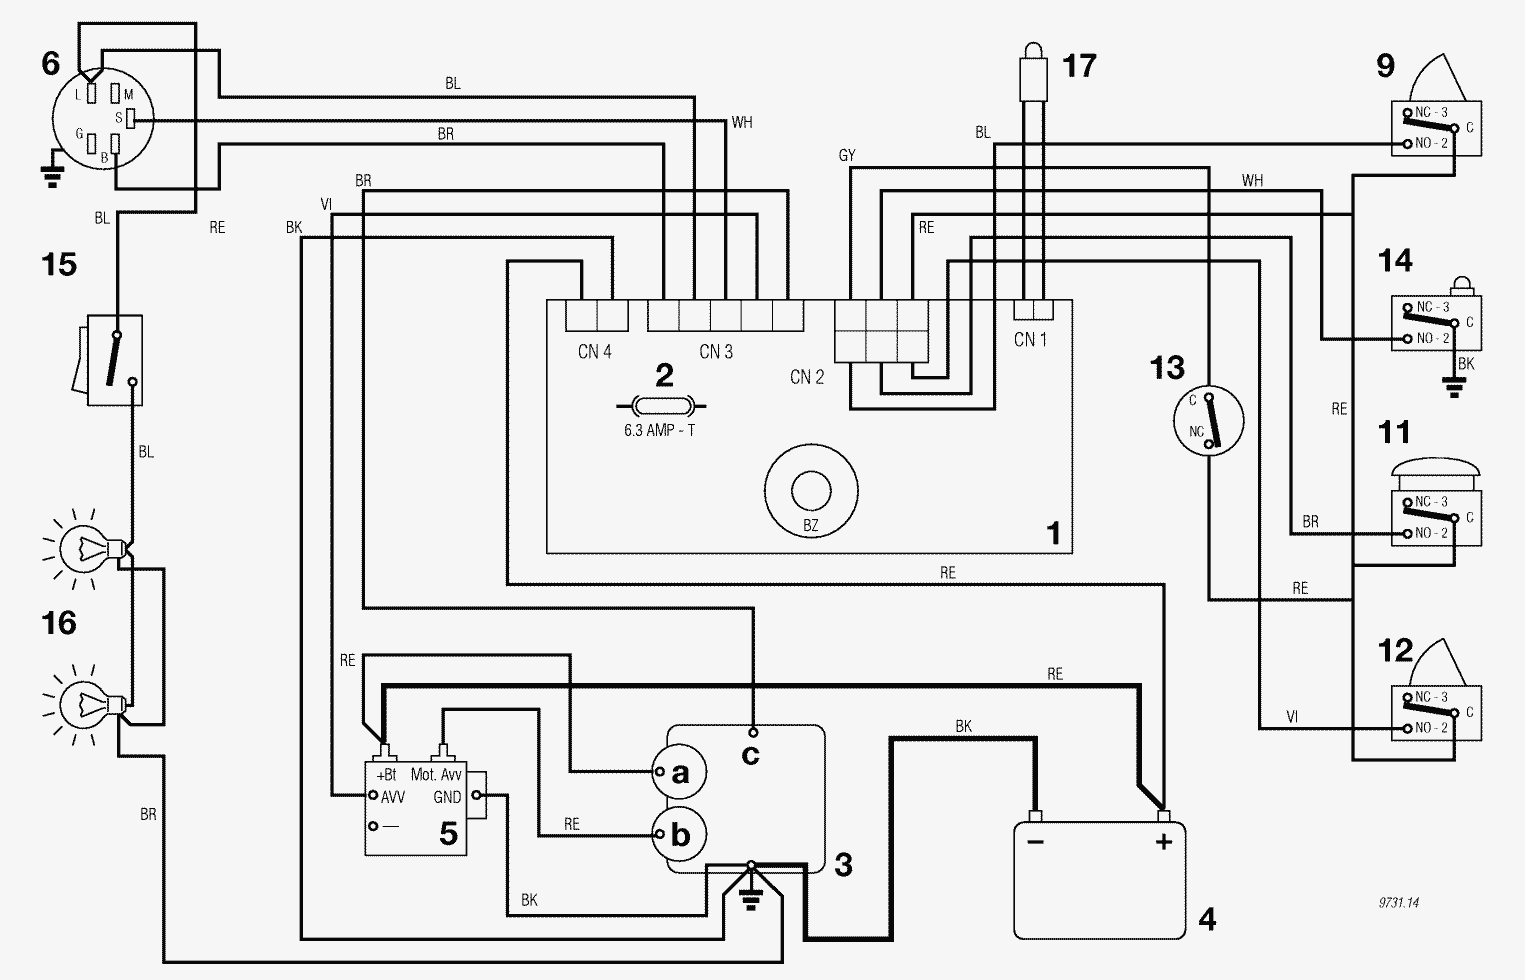 murray 42544x8c ignition wiring diagram murray 425001x8 wiring diagram taragak 19 espressotage de  murray 425001x8 wiring diagram